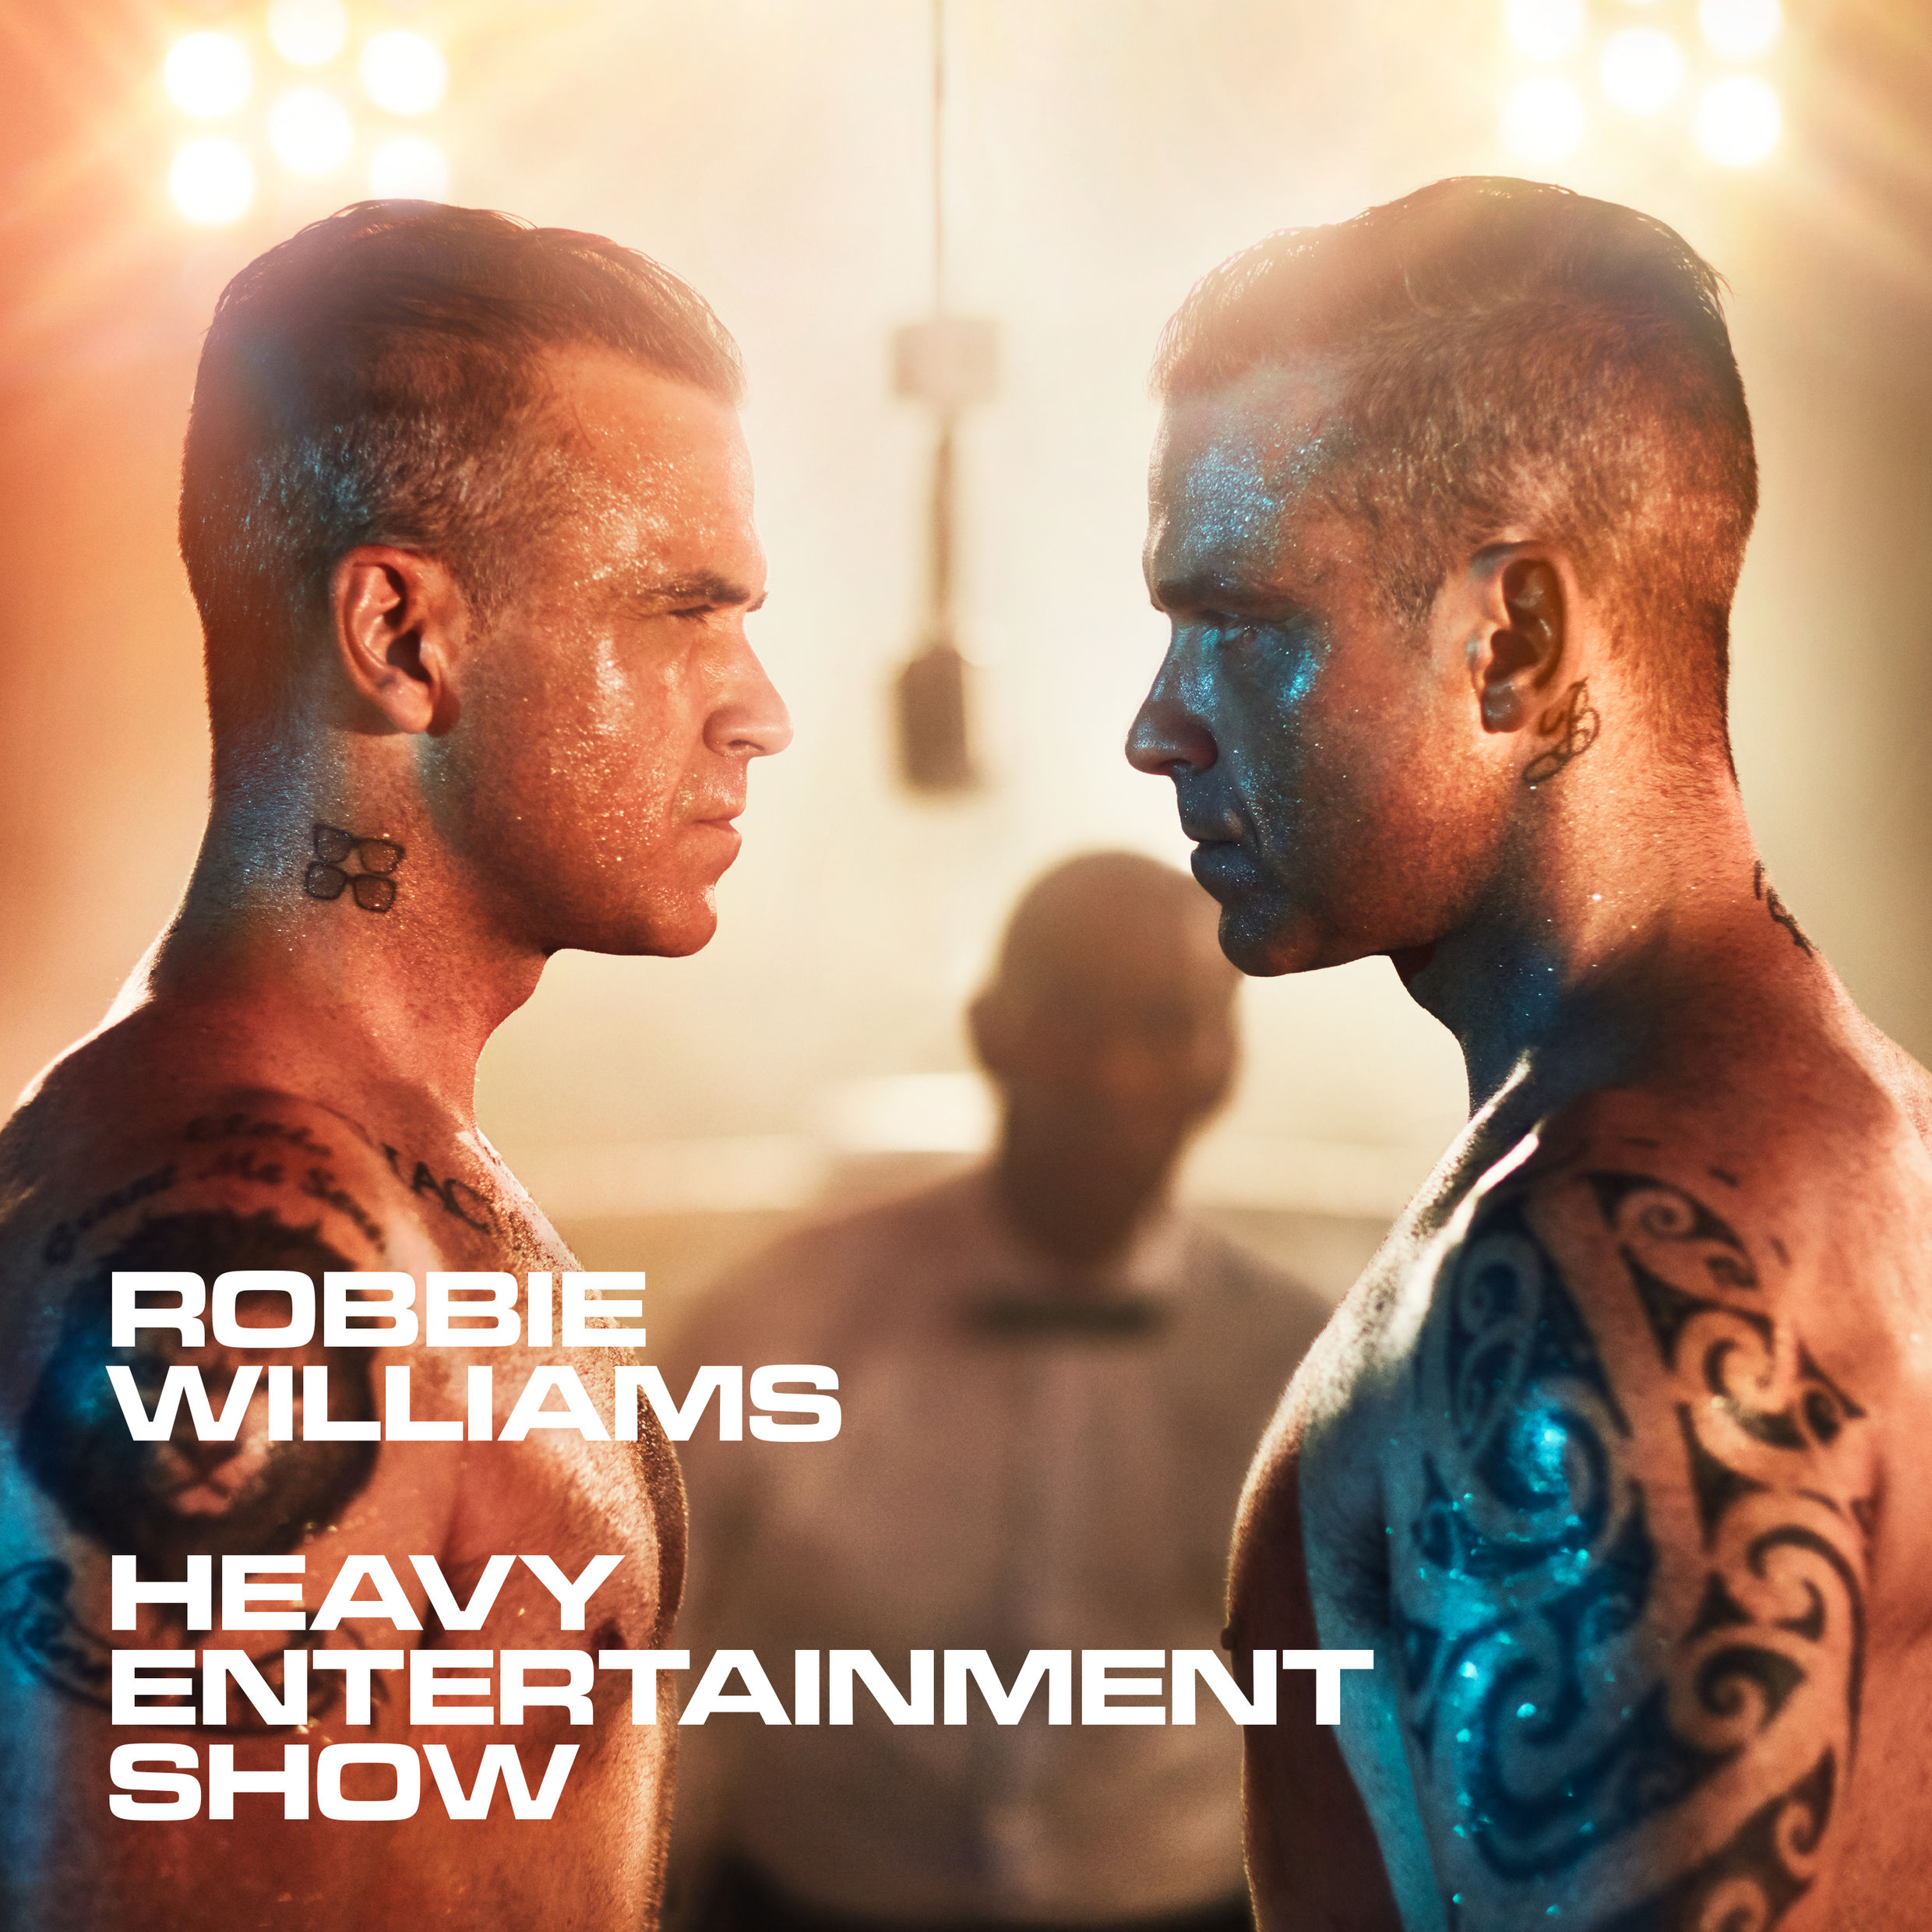 The Heavy Entertainment Show (2016) English Album HQ Mp3 Songs Listen And Download